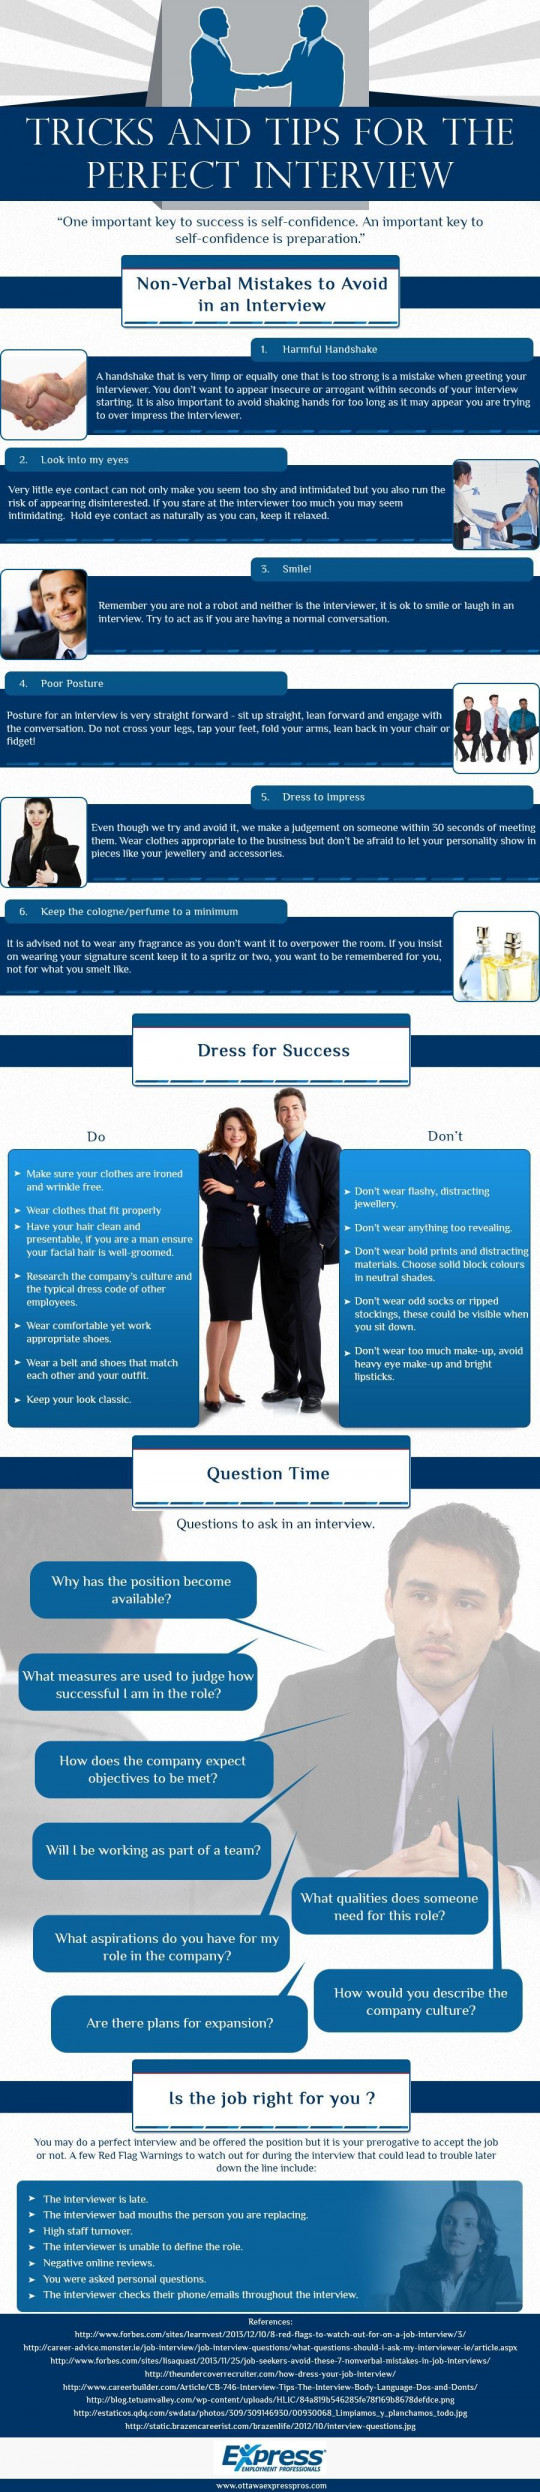 Tricks and Tips for The Perfect Interview